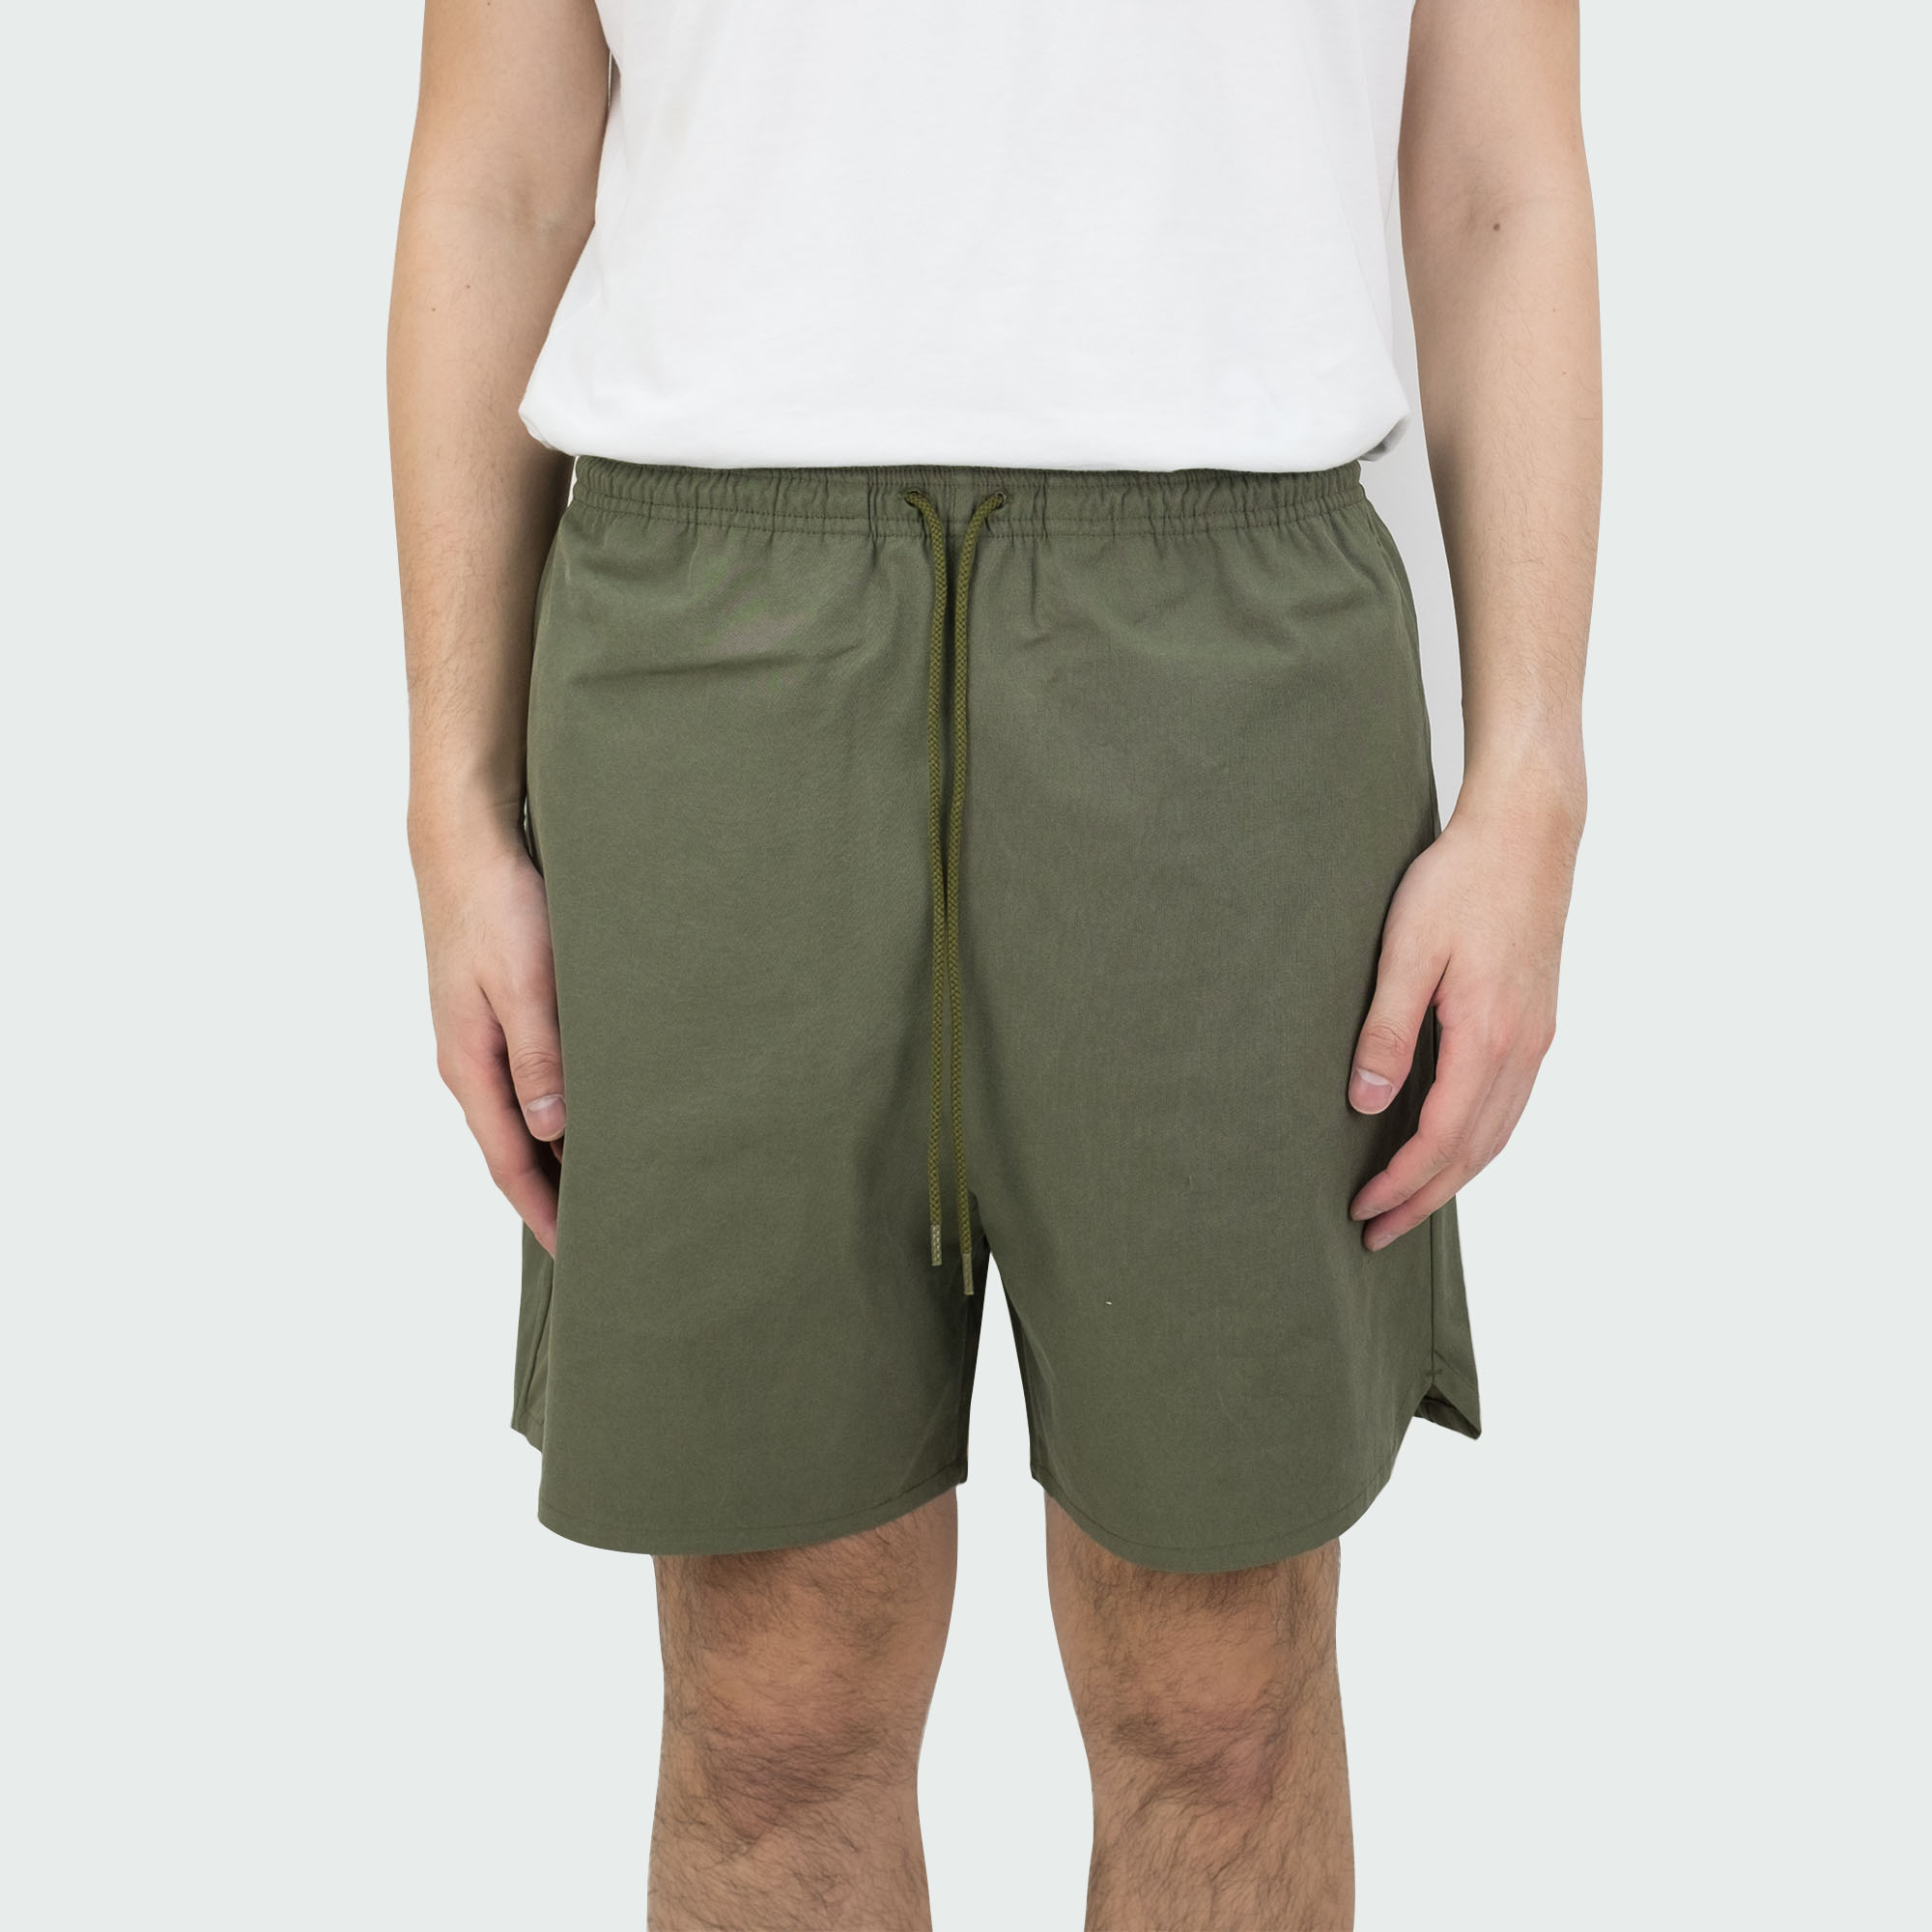 Sulfur Dyed Nidom Training Shorts Khaki 2